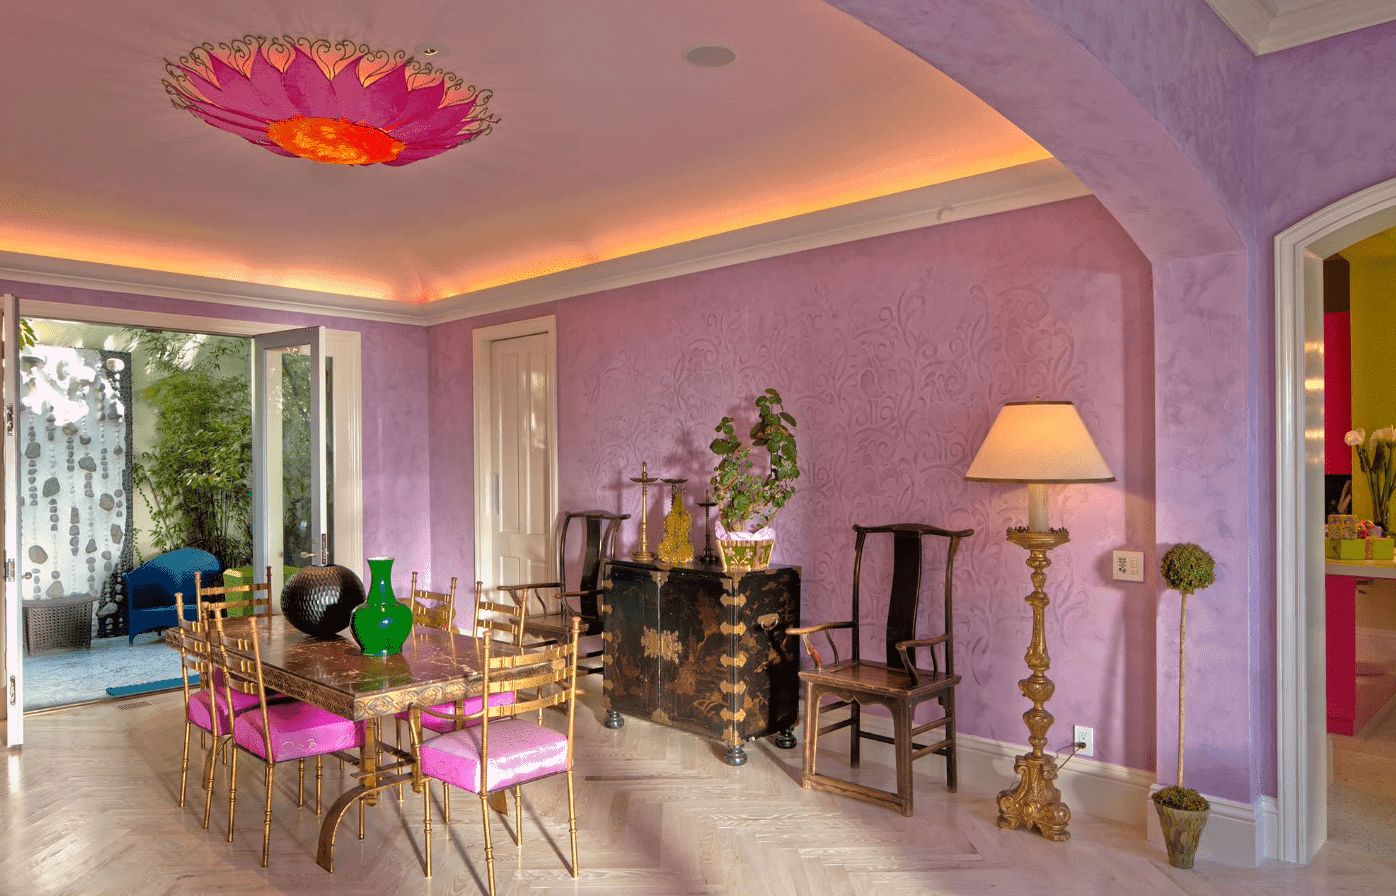 This dining room features a fancy dining table and chairs set lighted by a very attractive ceiling lighting. The area is surrounded by purple walls.